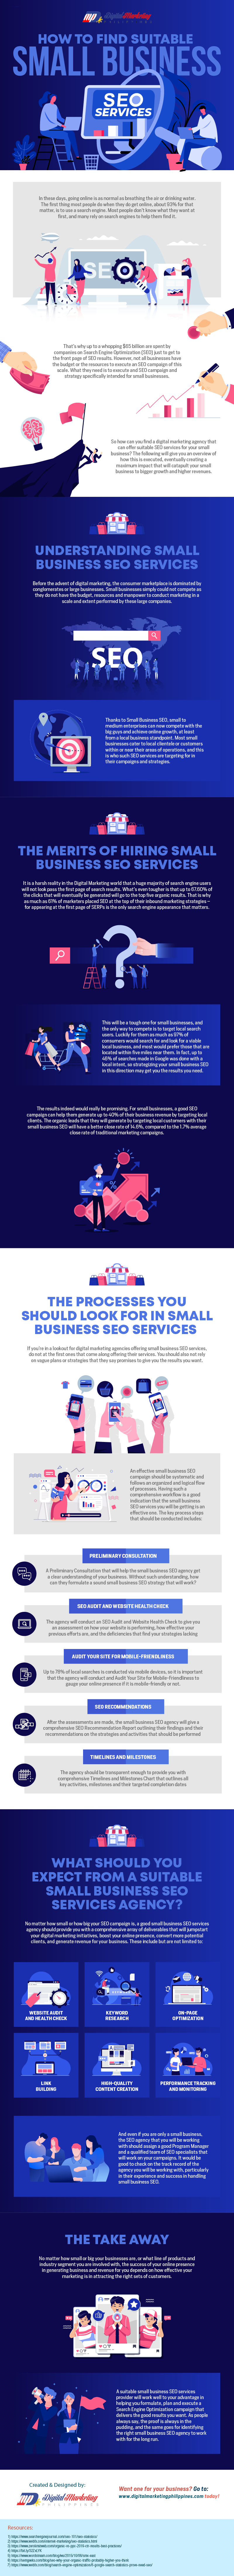 How to Obtain Suited Smaller Business Seo Companies [Infographic]